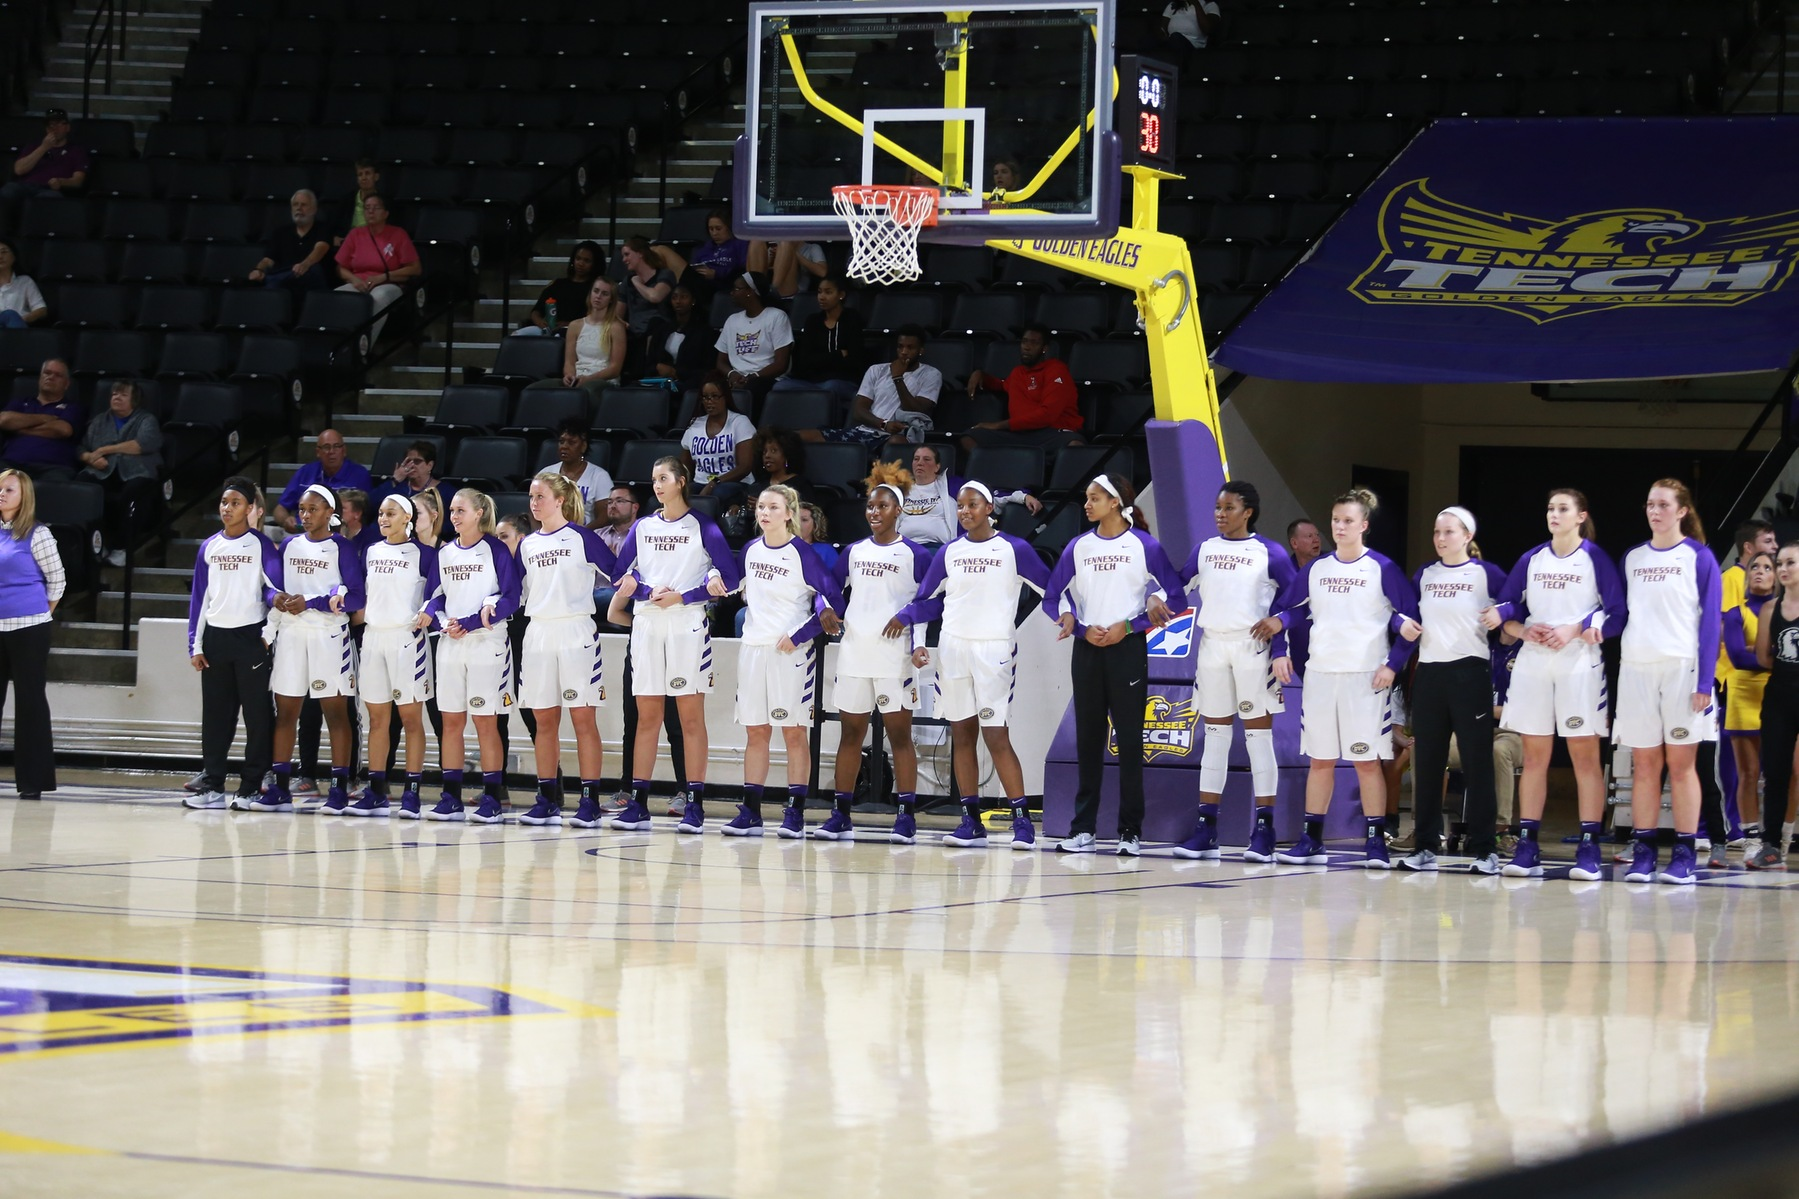 Tech women's basketball to hold first Education Day on Dec. 19 versus Winthrop